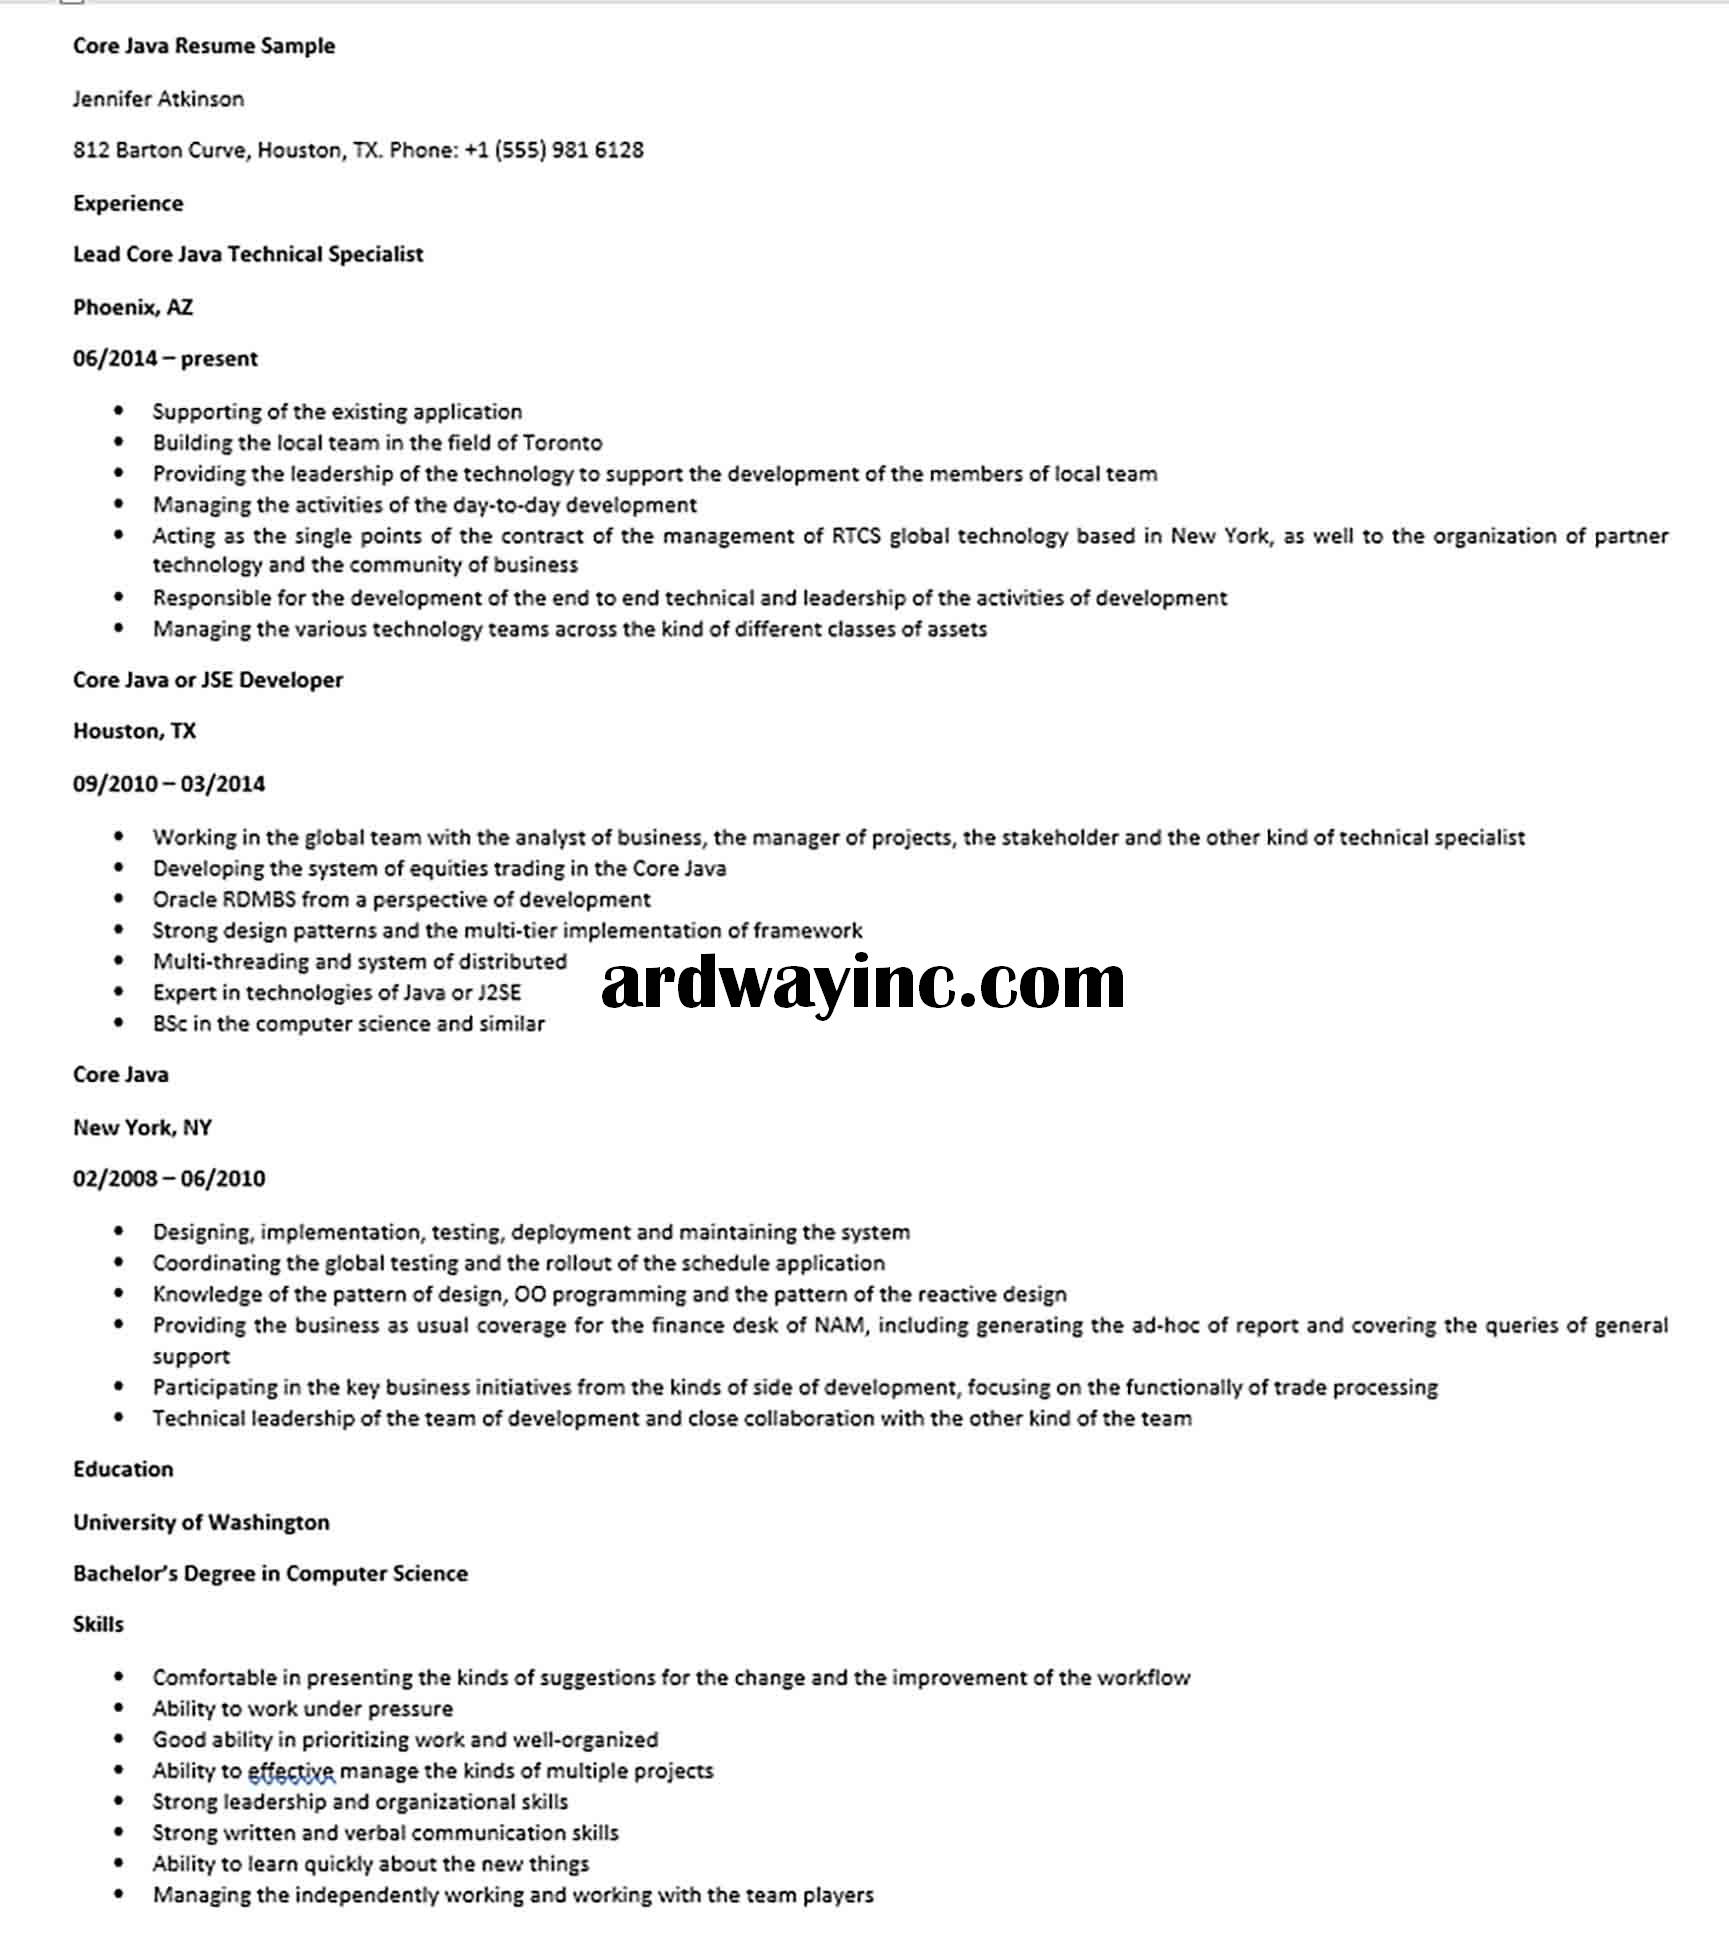 Core Java Resume Sample